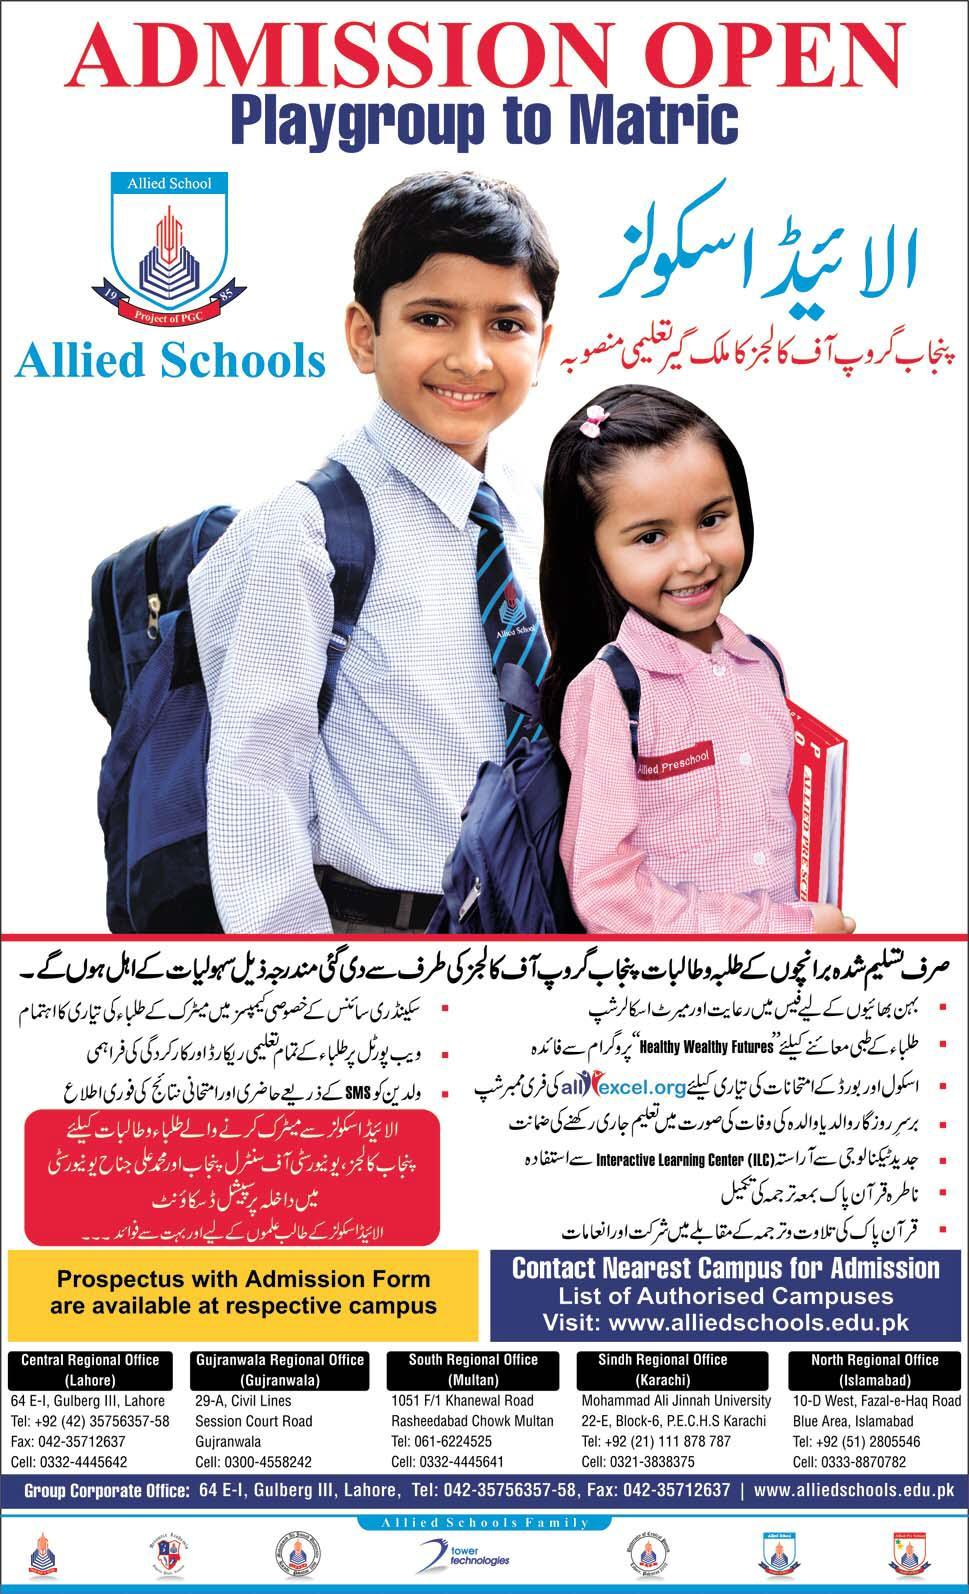 Allied Schools Admission 2017 Playgroup To Matric Open